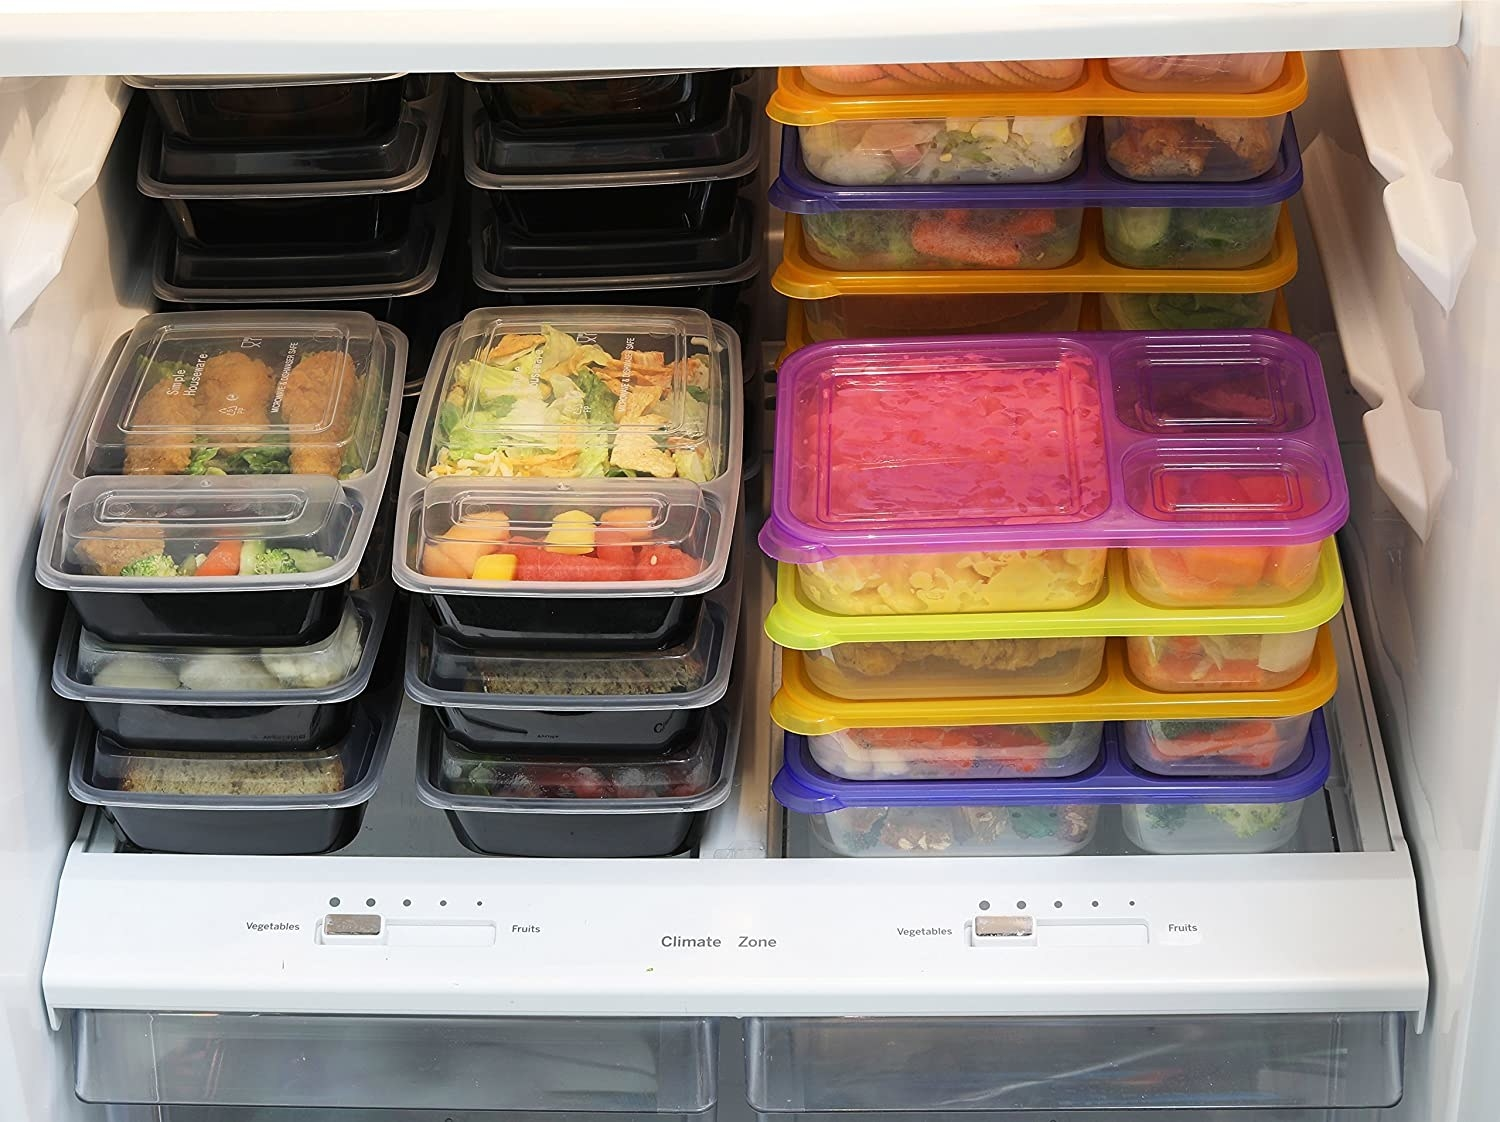 A set of meal prepping containers in a frdige